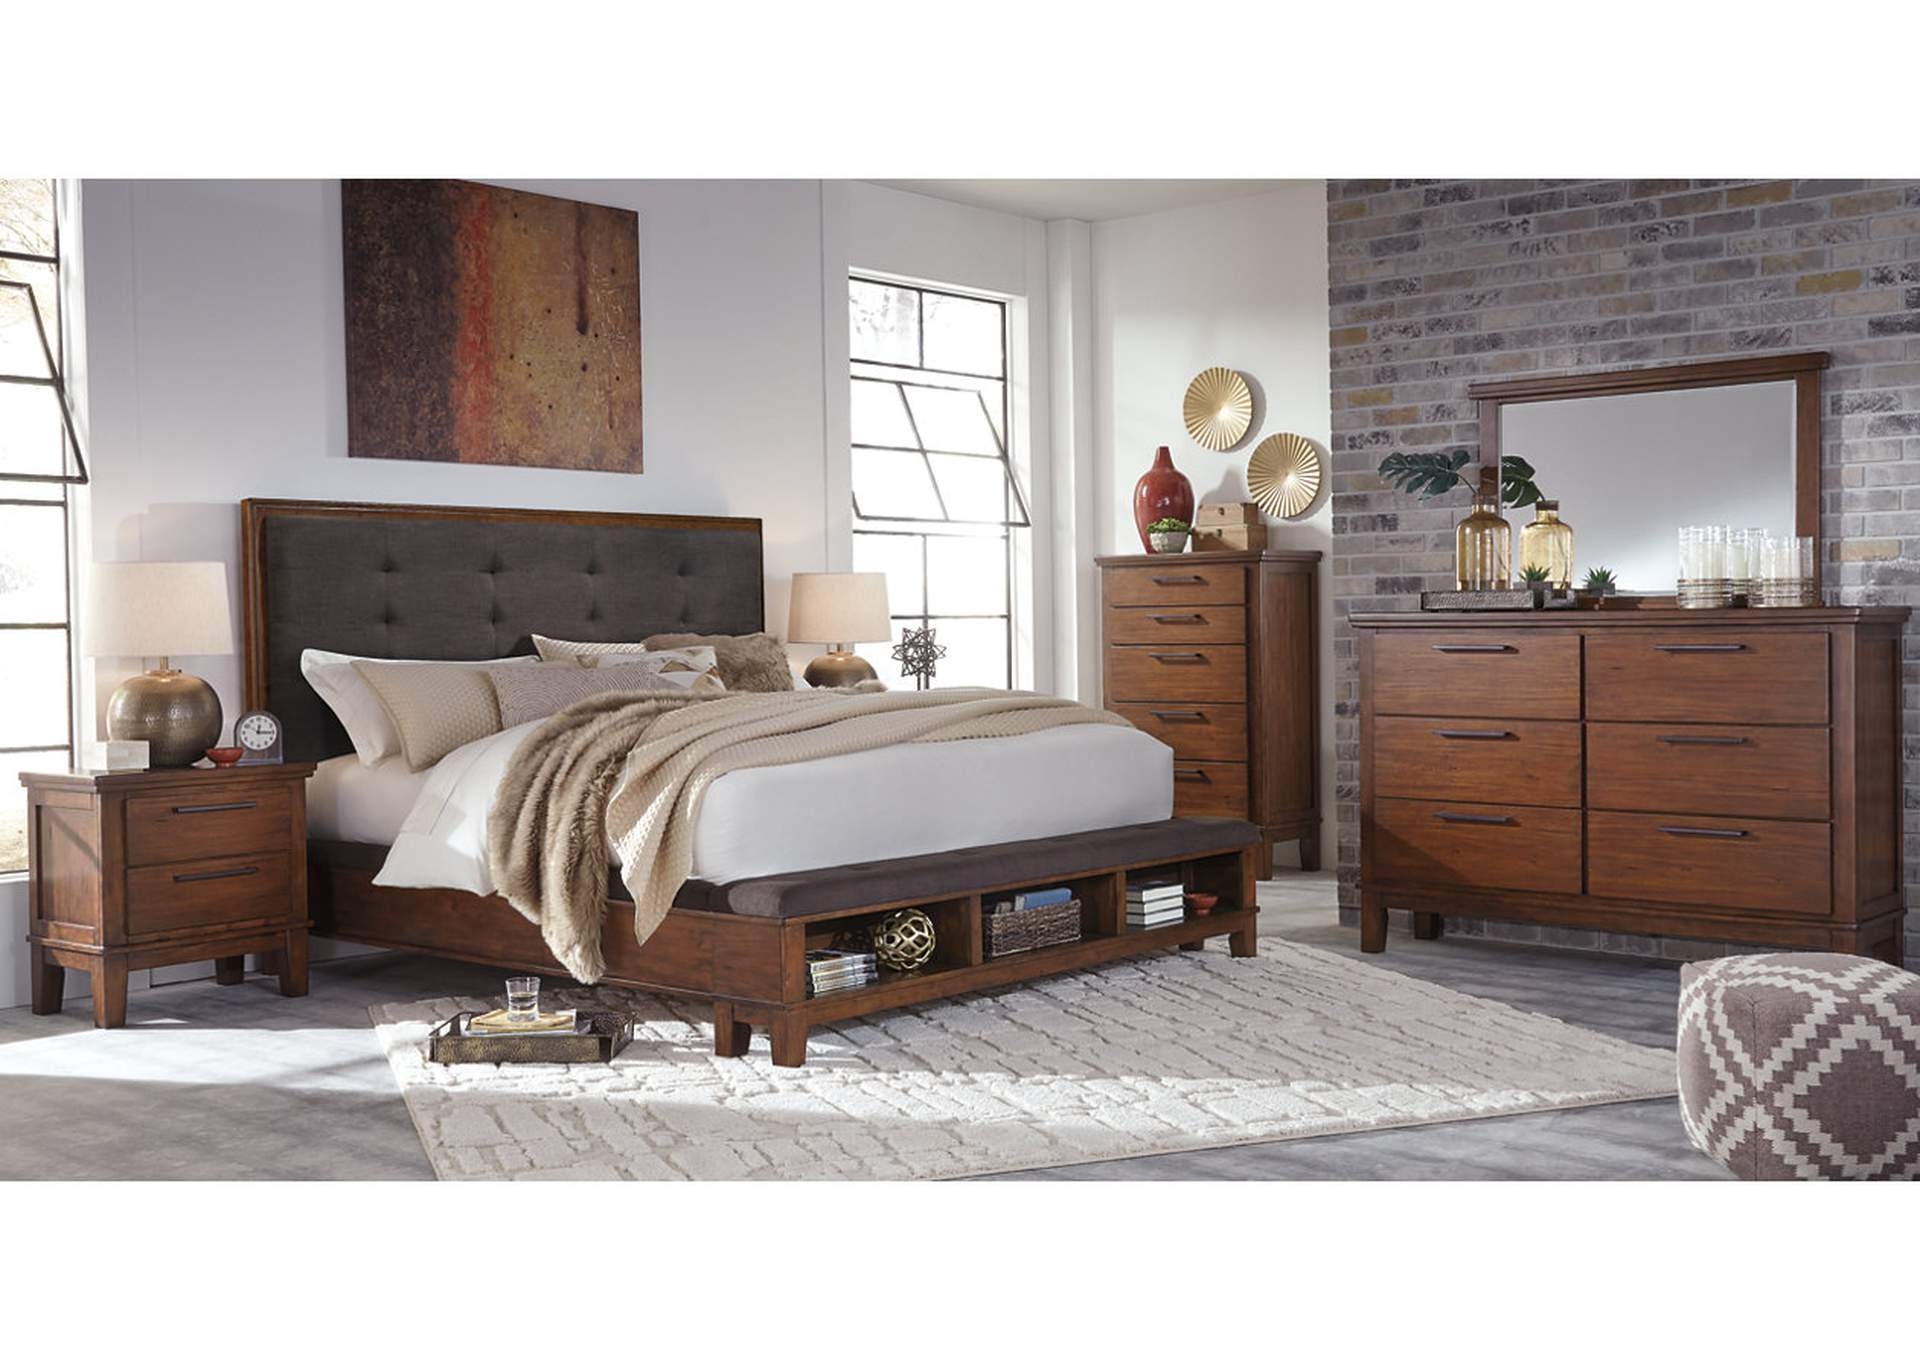 Ralene Medium Brown Queen Upholstered Storage Bed w/Dresser, Mirror & Drawer Chest,Signature Design By Ashley